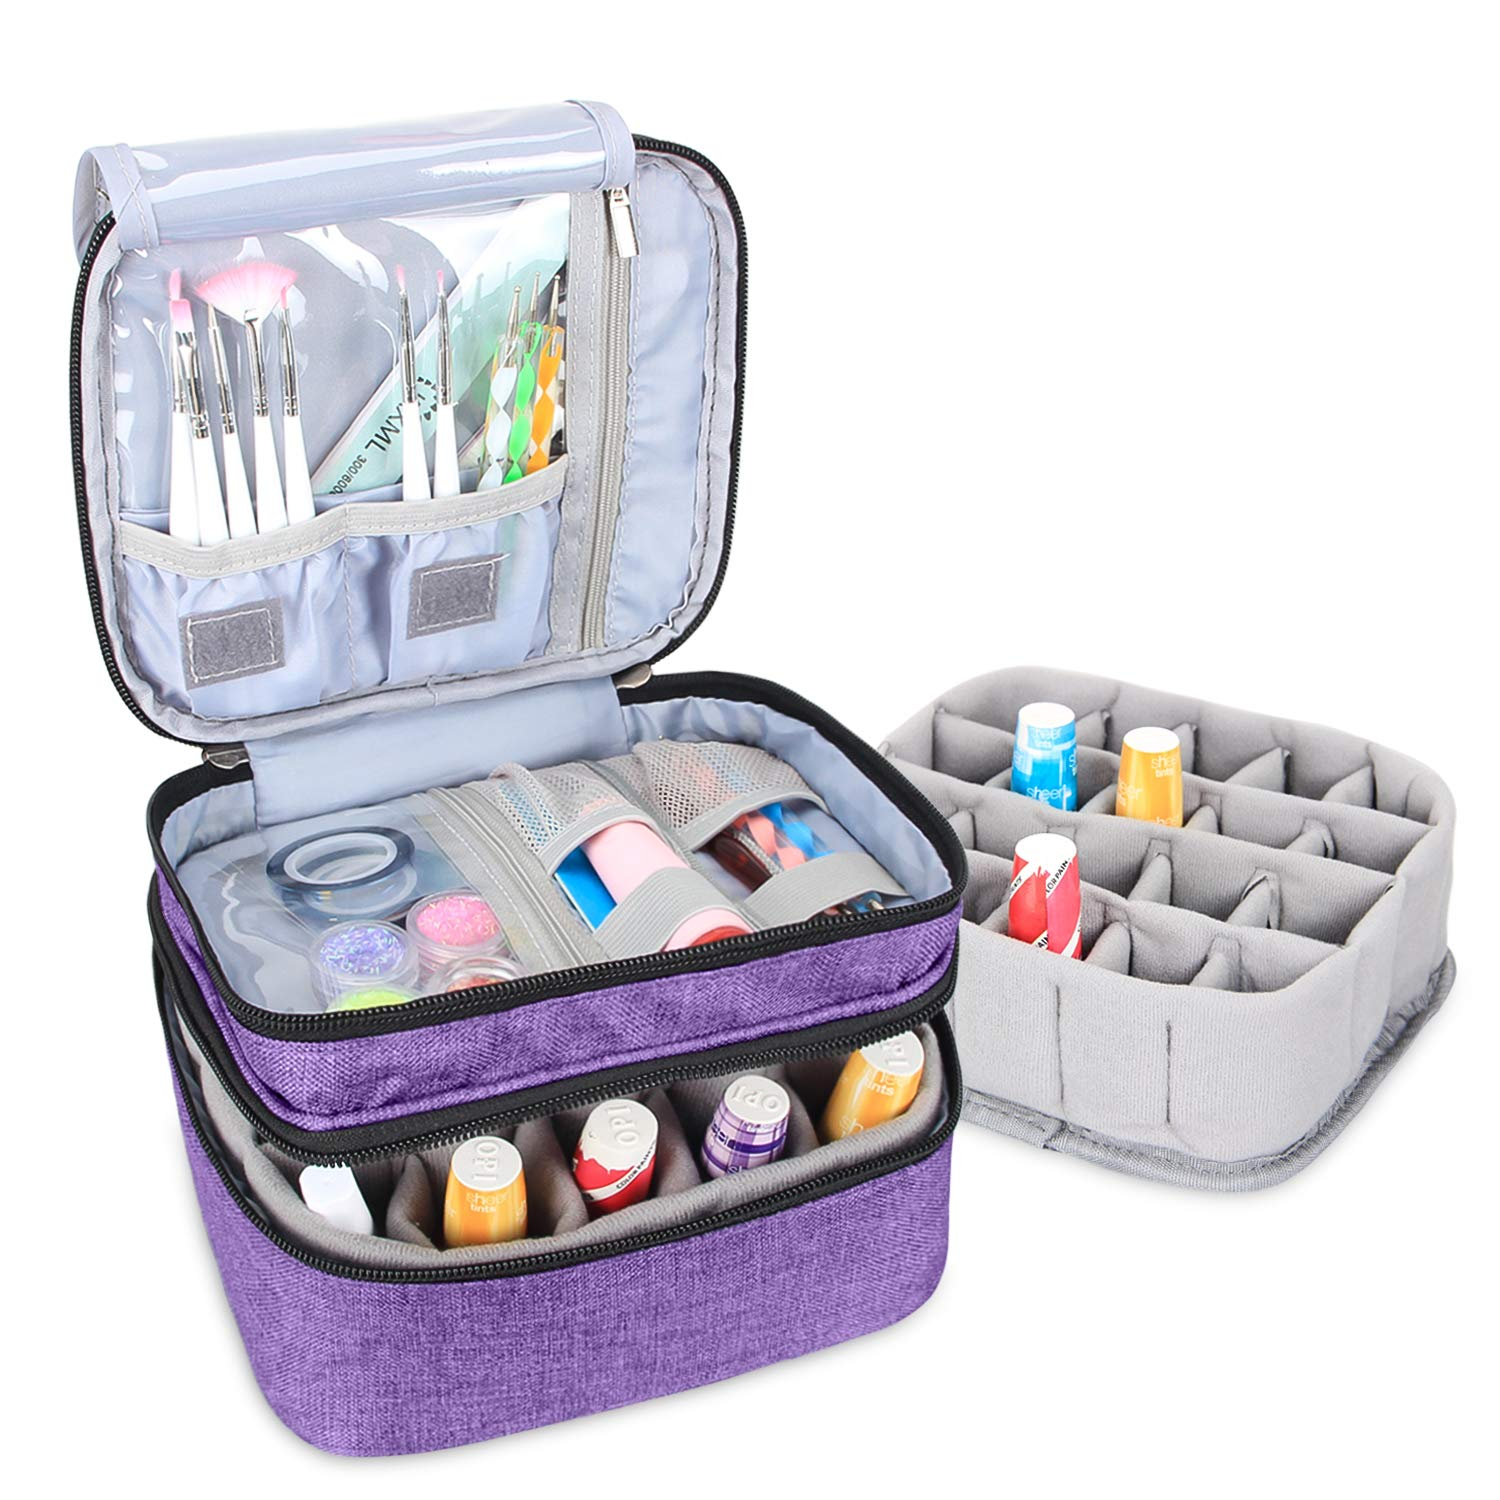 Luxja Nail Polish Carrying Case - Holds 20 Bottles (15ml - 0.5 fl.oz), Double-layer Organizer for Nail Polish and Manicure Set, Purple by LUXJA